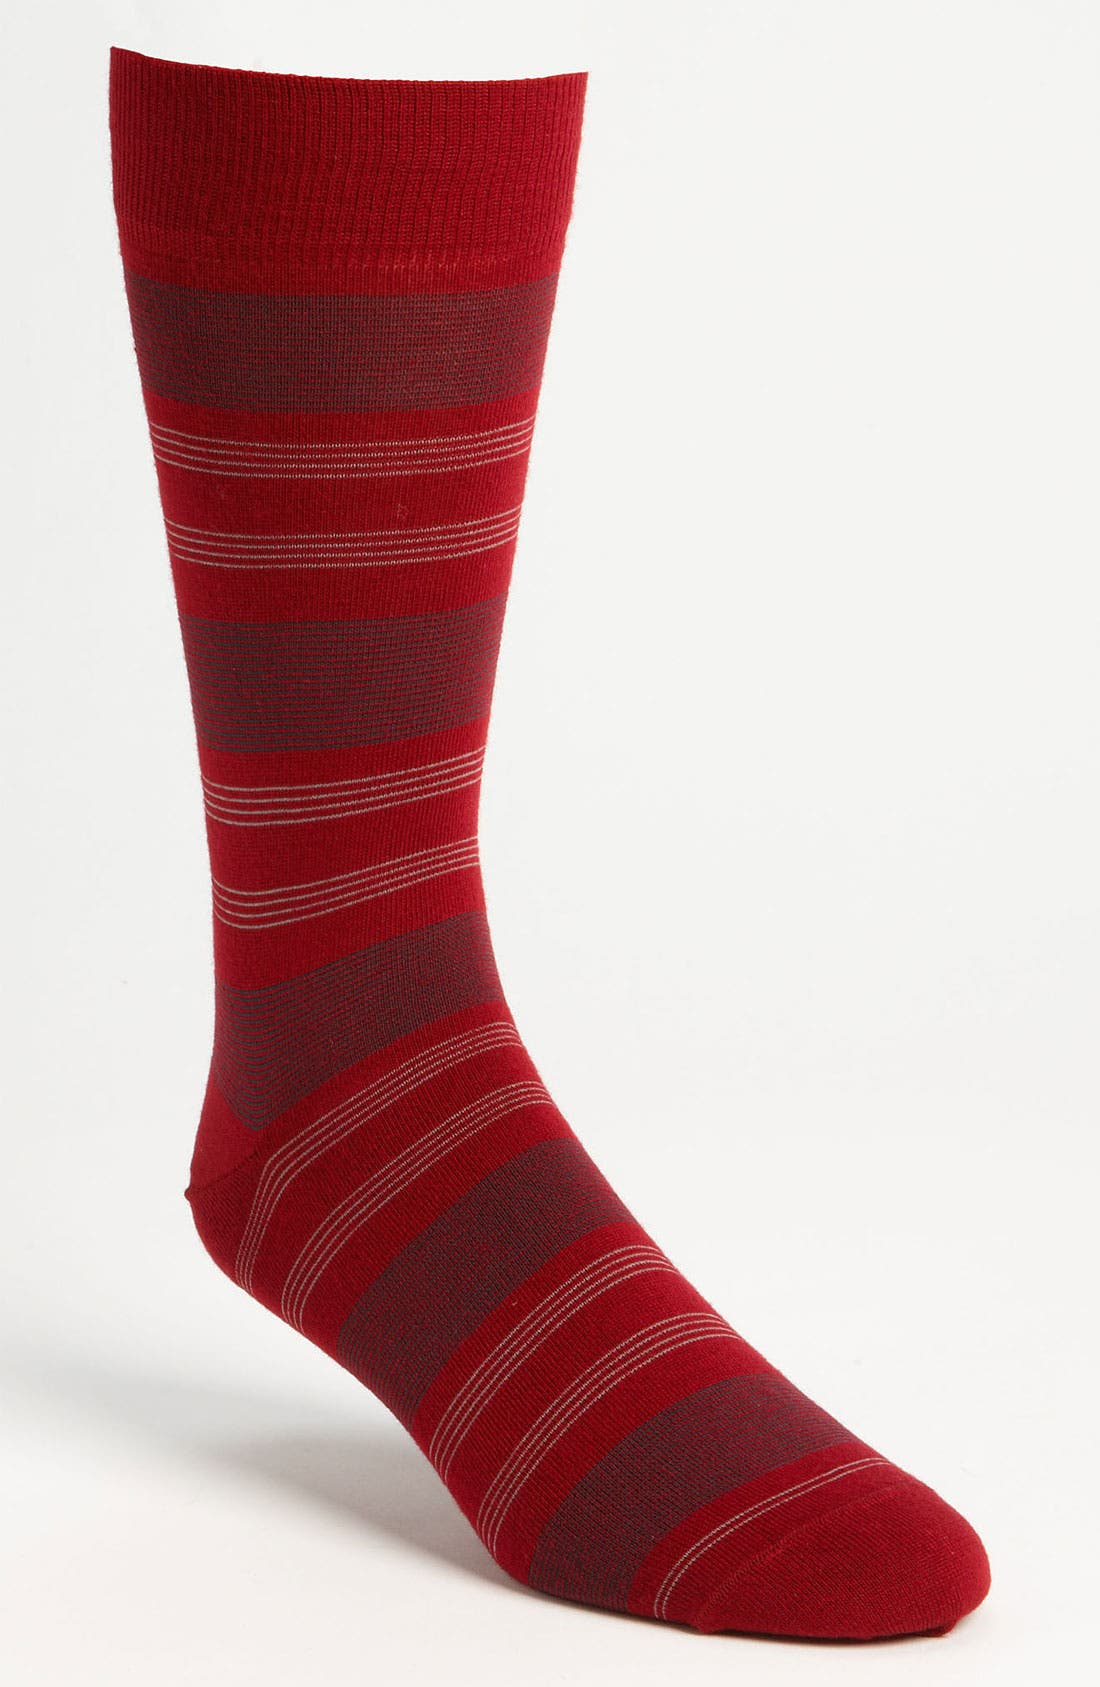 Alternate Image 1 Selected - Marcoliani 'Cuvio' Stripe Socks